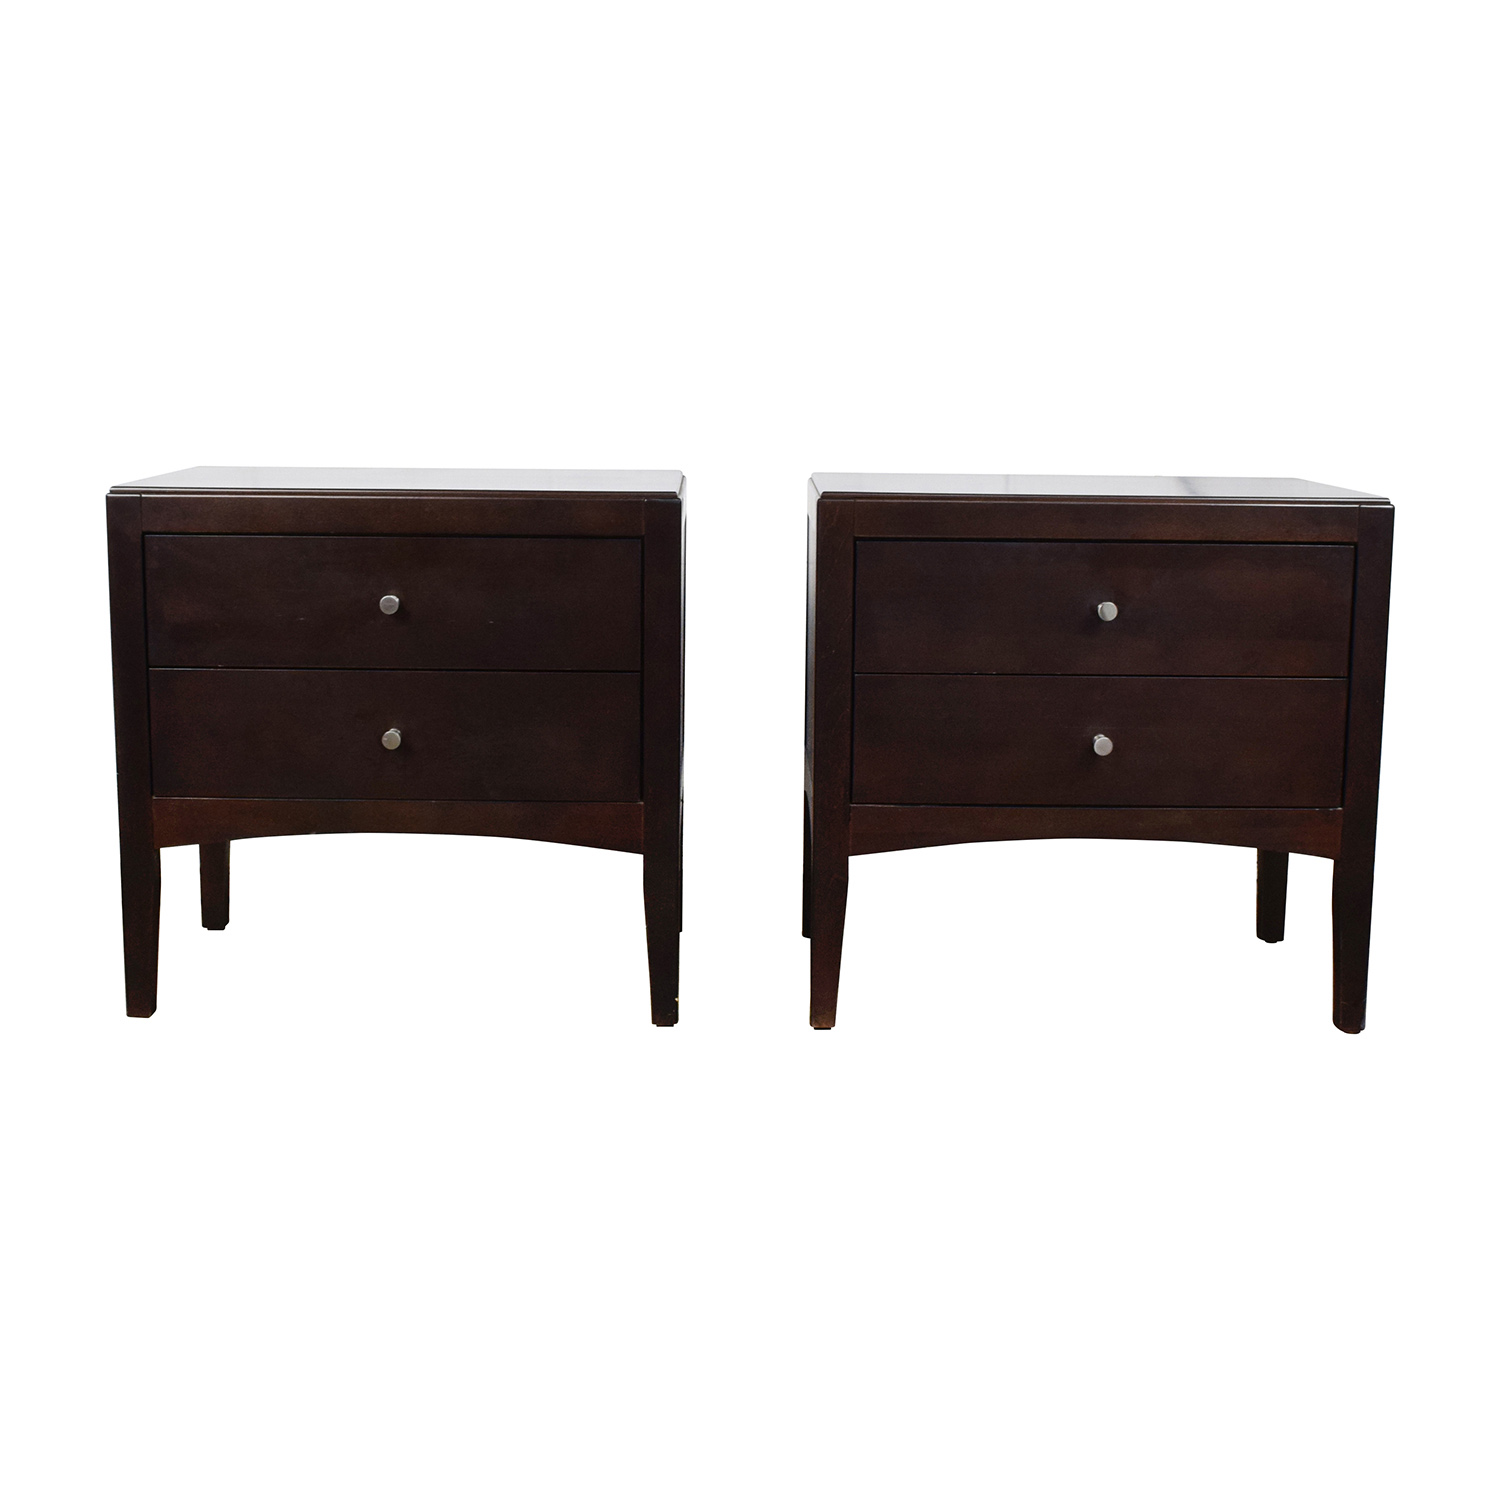 44 Off Macy S Macy S Dark Wood Two Drawer Nightstands Tables